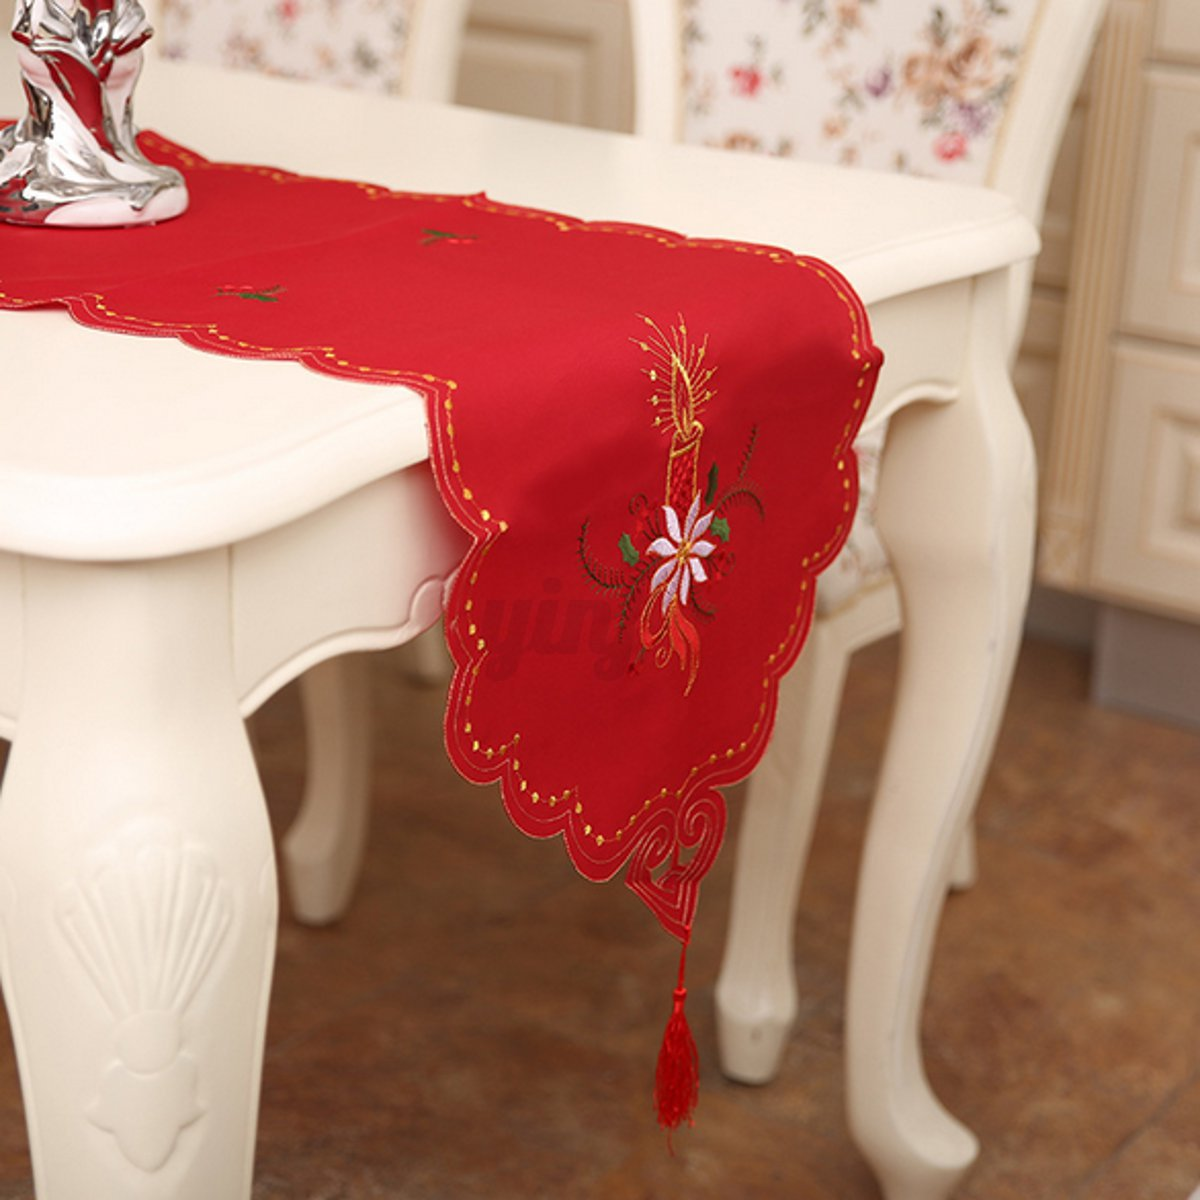 chair covers at christmas tree shop wood office tablecloth embroidered table cover runner